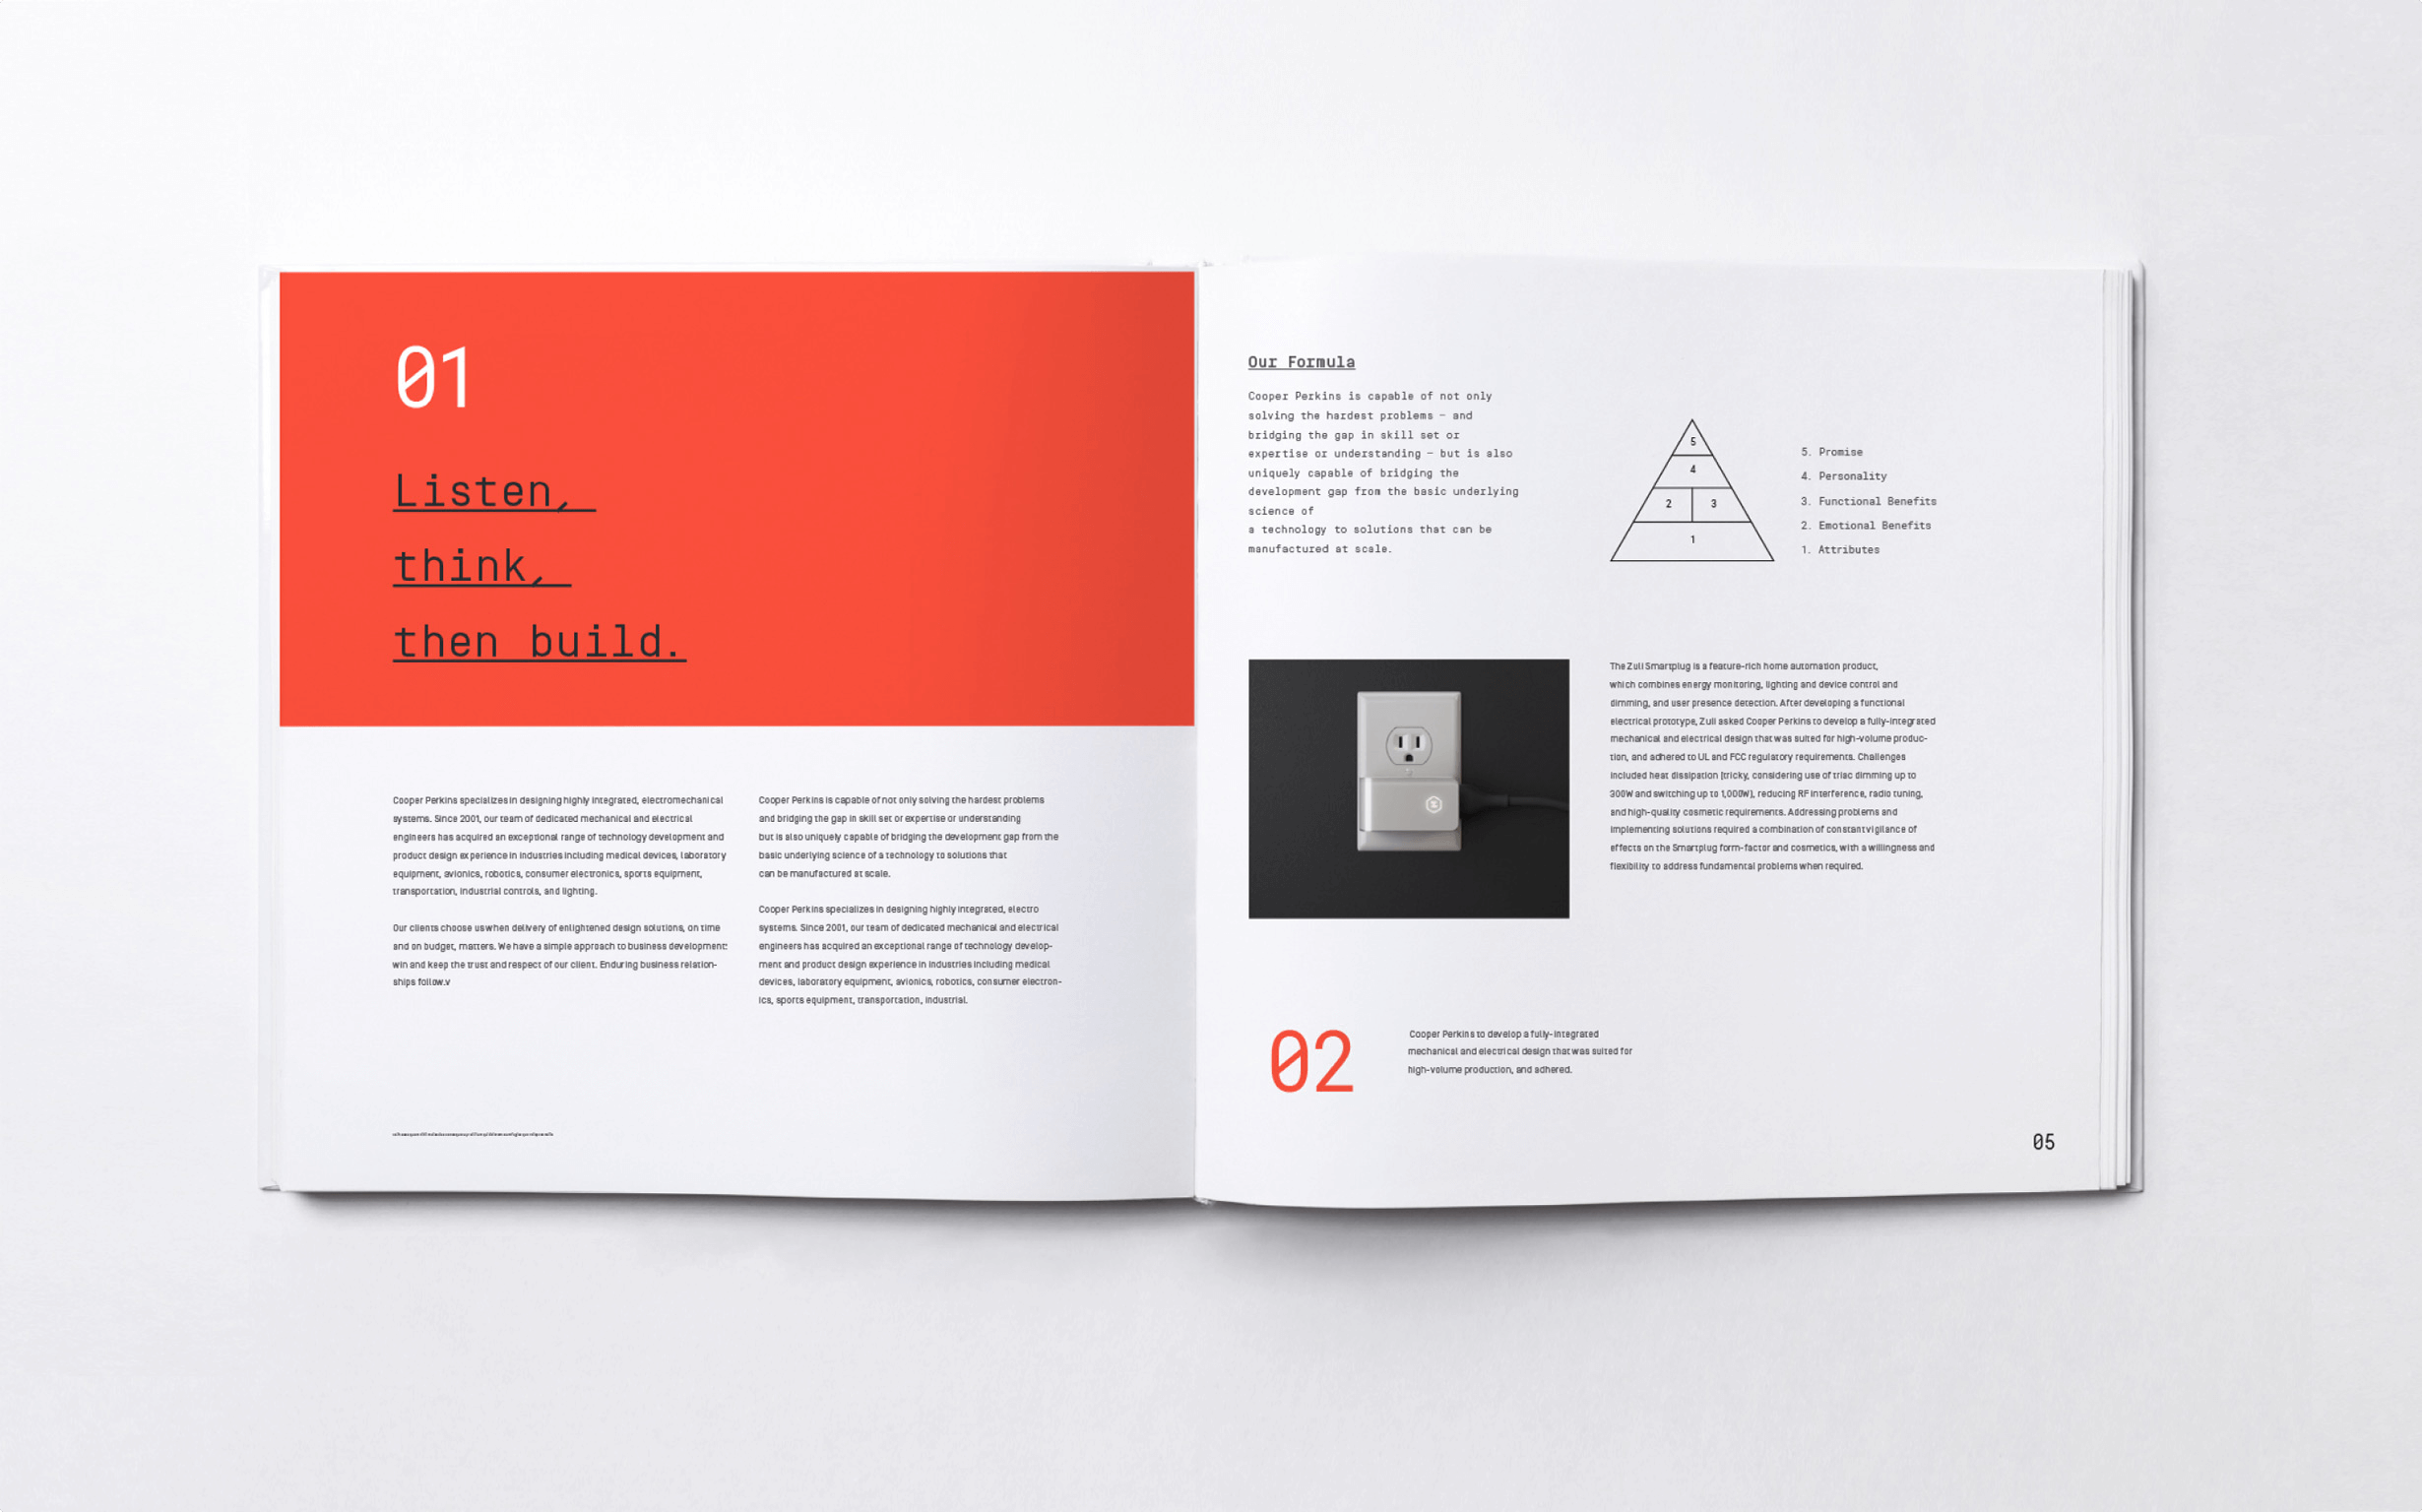 """Cooper Perkins' branding is expressed in a book with the phrase, """"Listen, think, then build"""" and an outline of their process."""